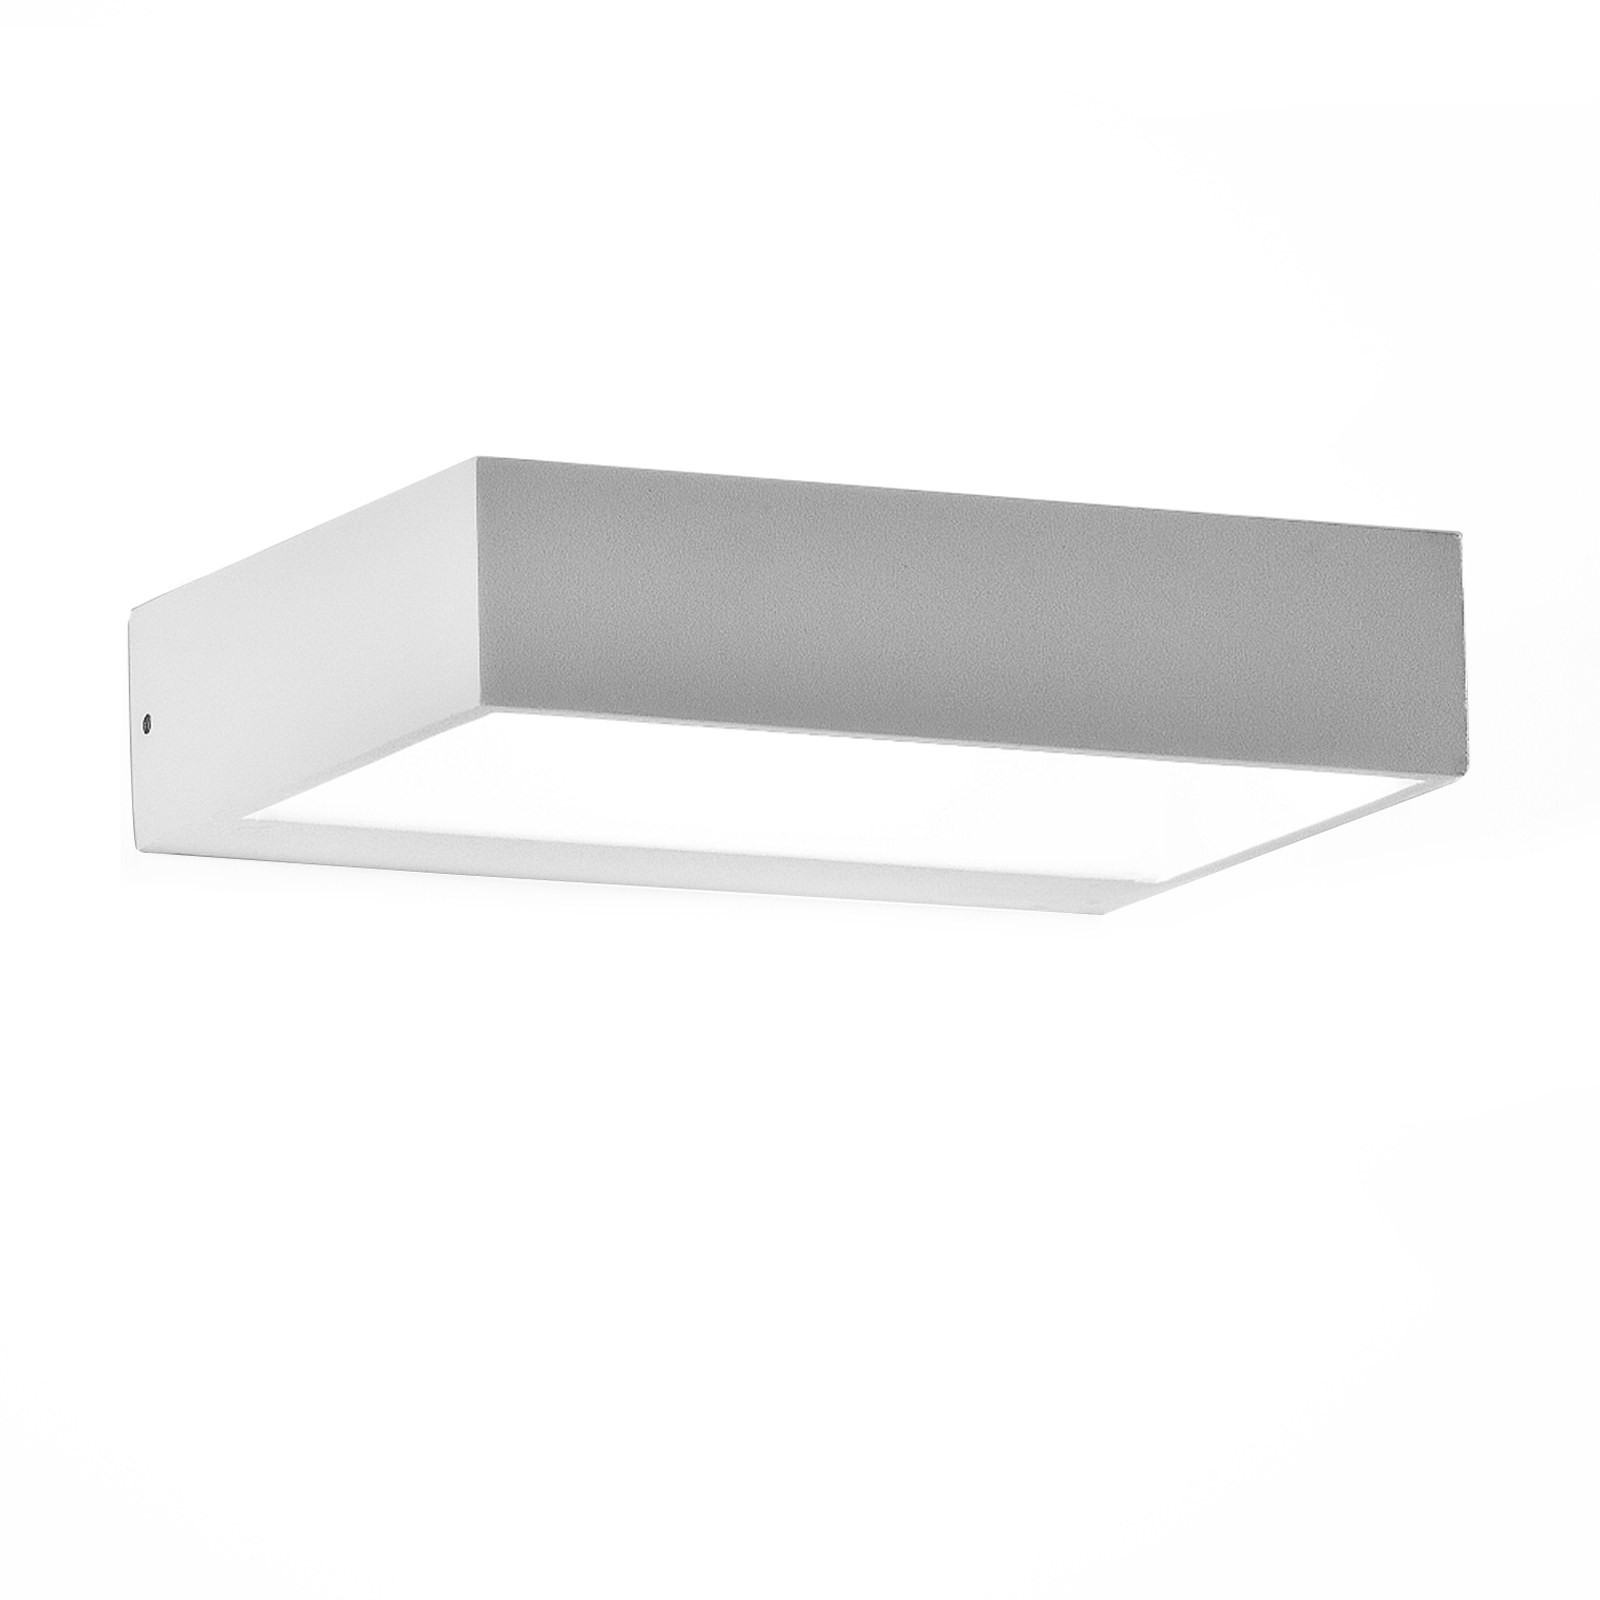 Applique lampada da parete in alluminio led 6 watt design for Applique da interno